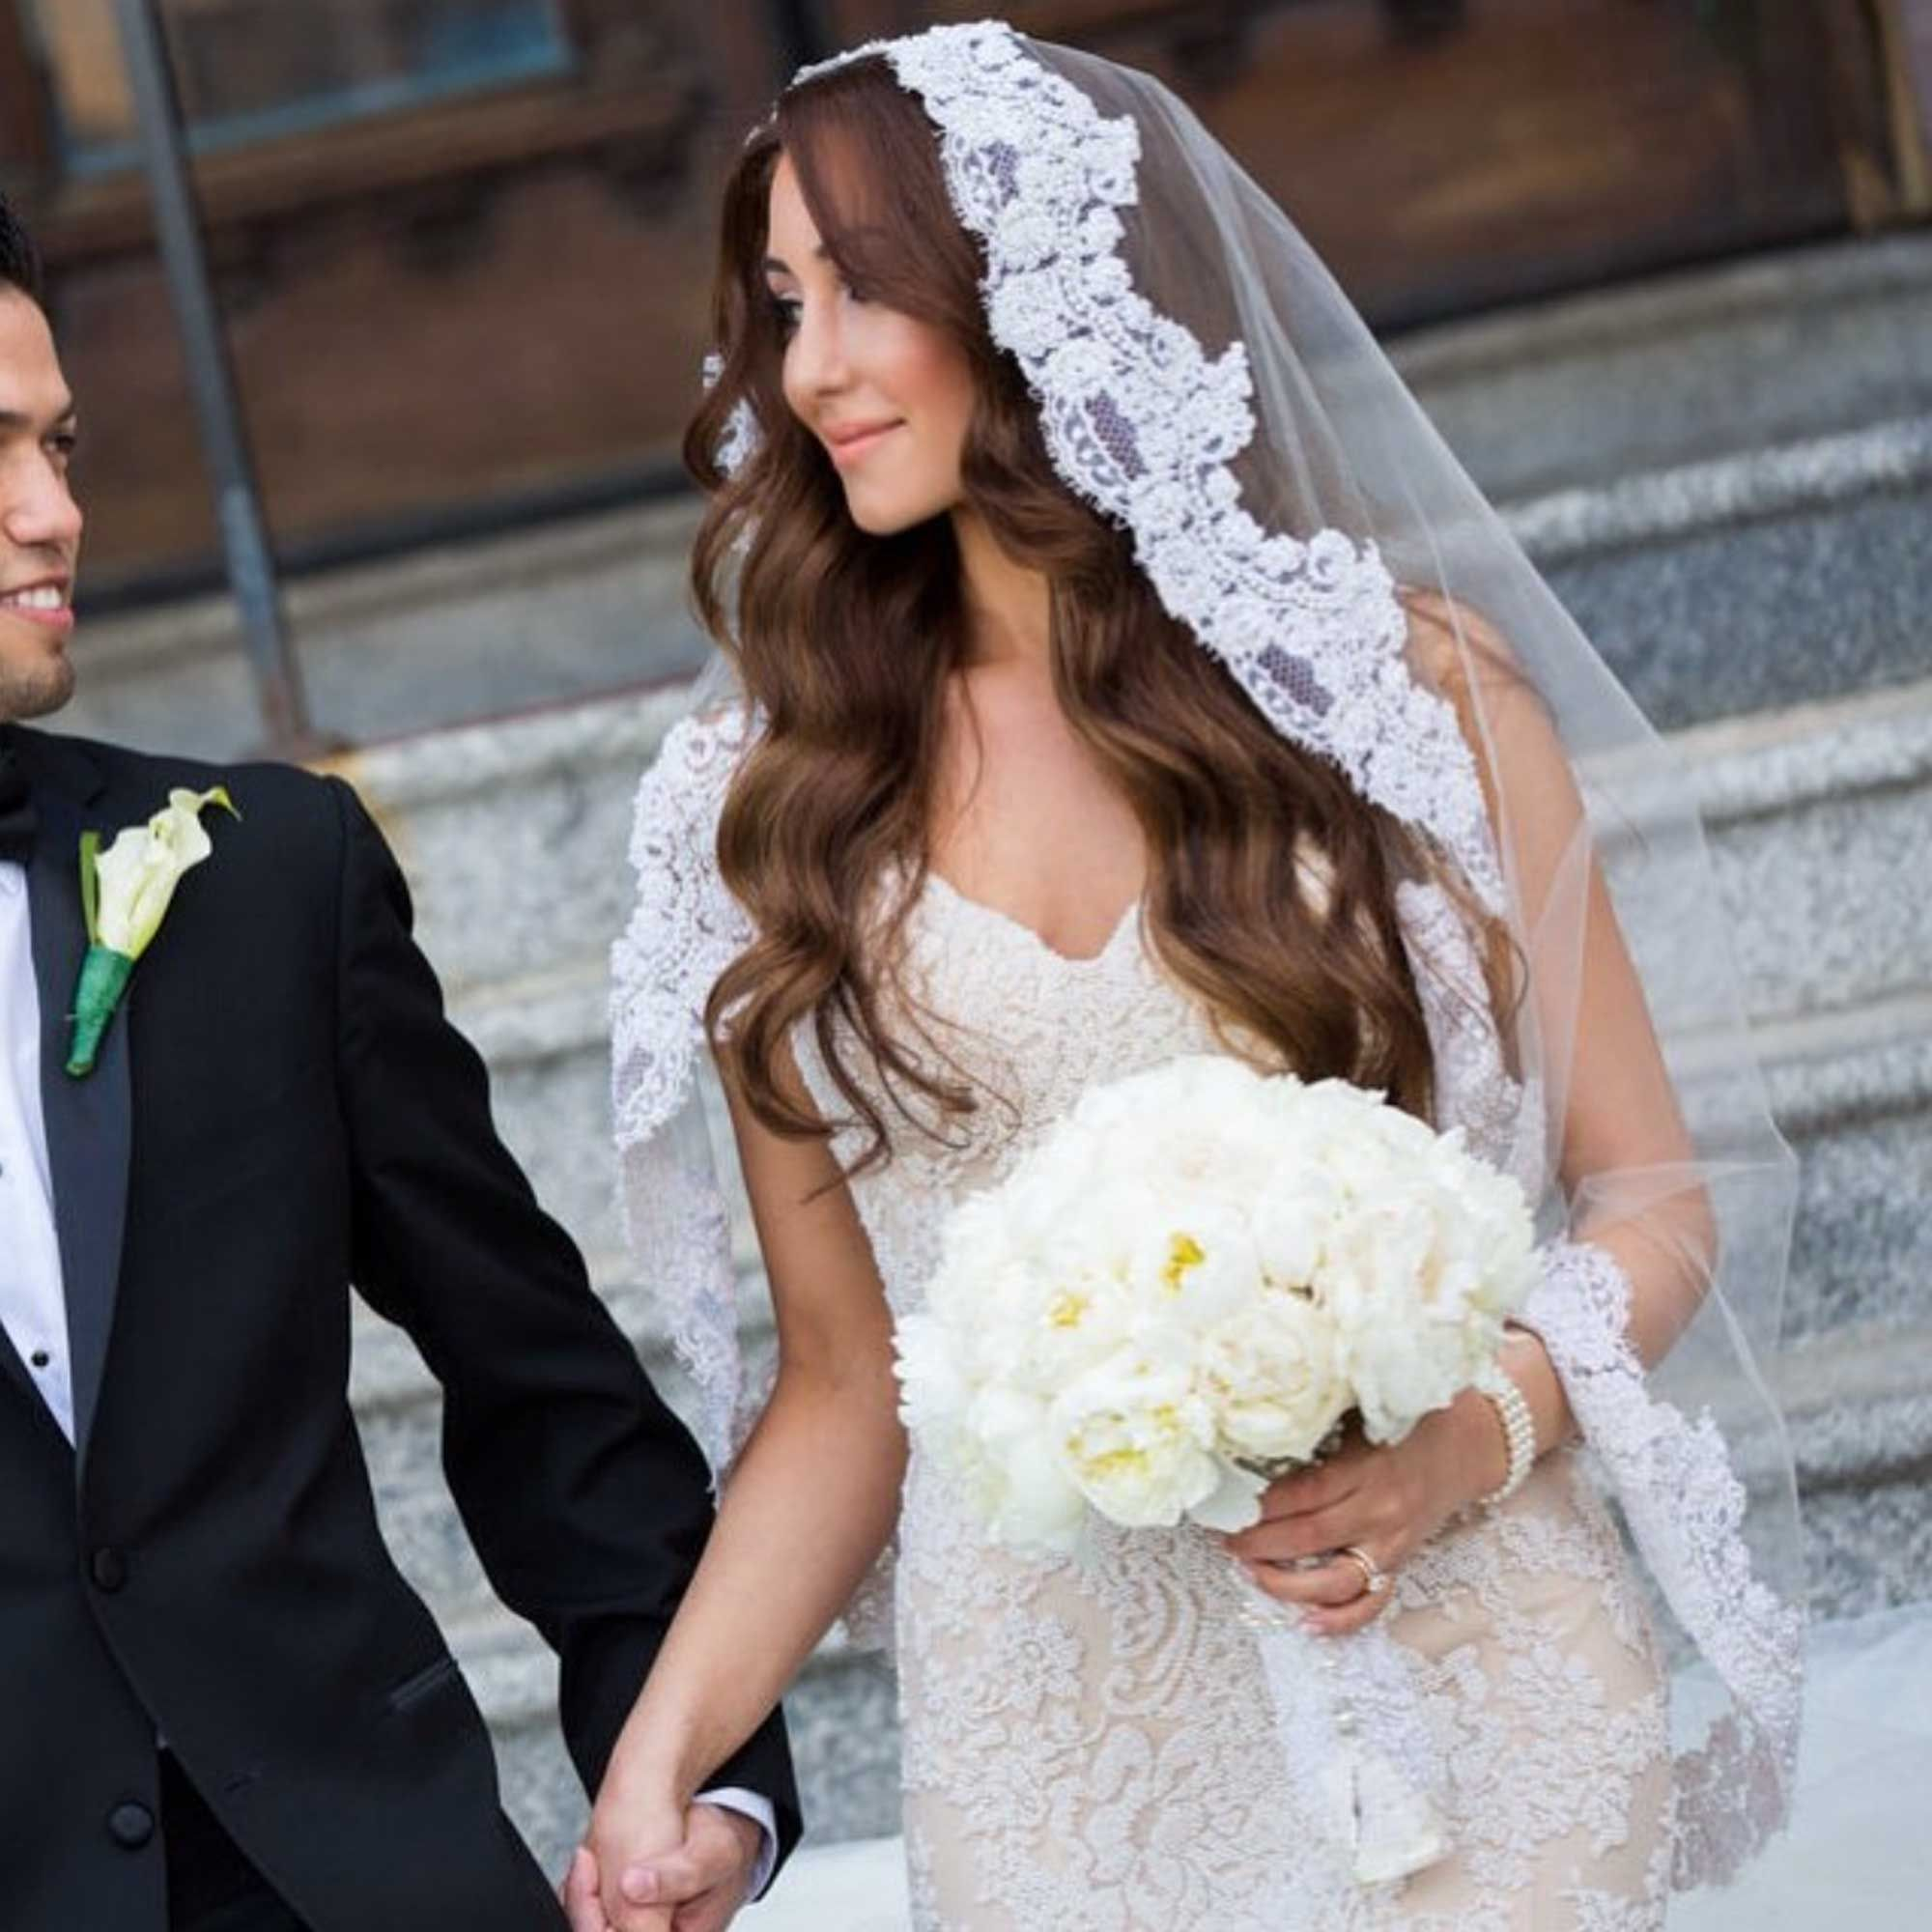 17 Wedding Hairstyles You Ll Adore: 36 Stunning Wedding Veils That Will Leave You Speechless